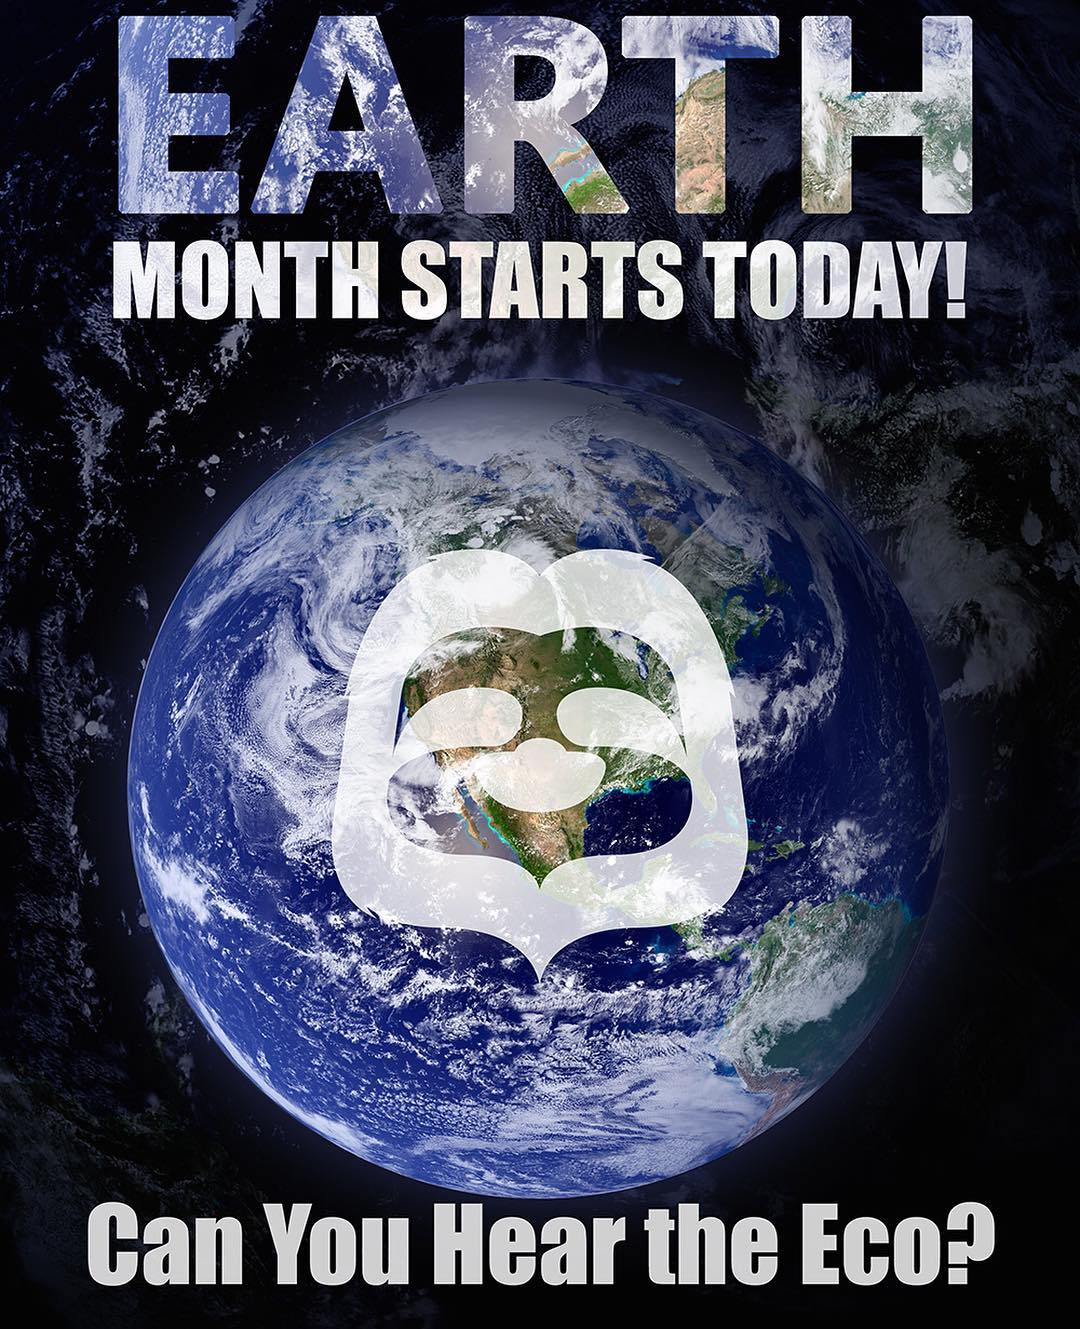 Happy #EarthMonth! Stay tuned for some money saving deals comin' your way in the next few weeks to celebrate our